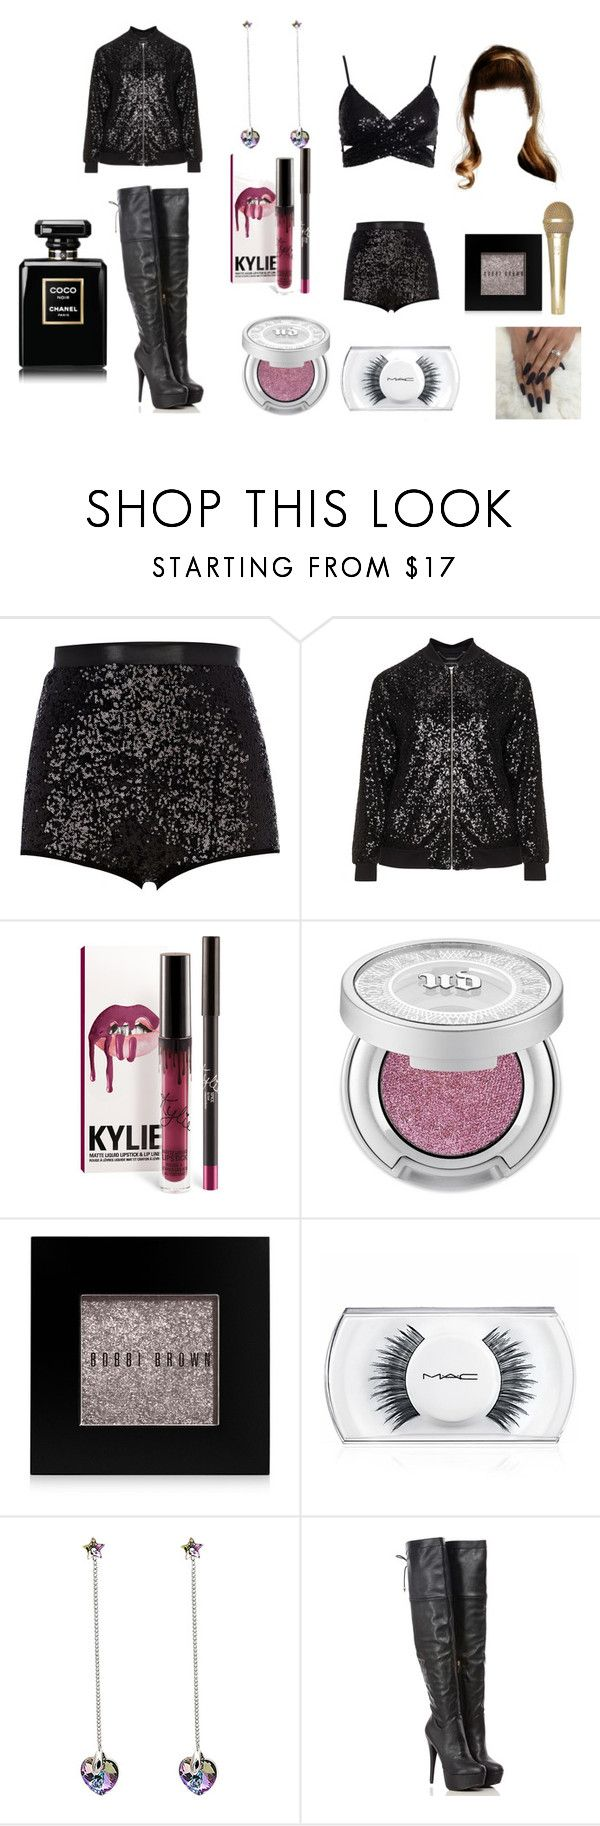 """""""#60 España"""" by barbymollon ❤ liked on Polyvore featuring River Island, Manon Baptiste, Urban Decay, Bobbi Brown Cosmetics and MAC Cosmetics"""